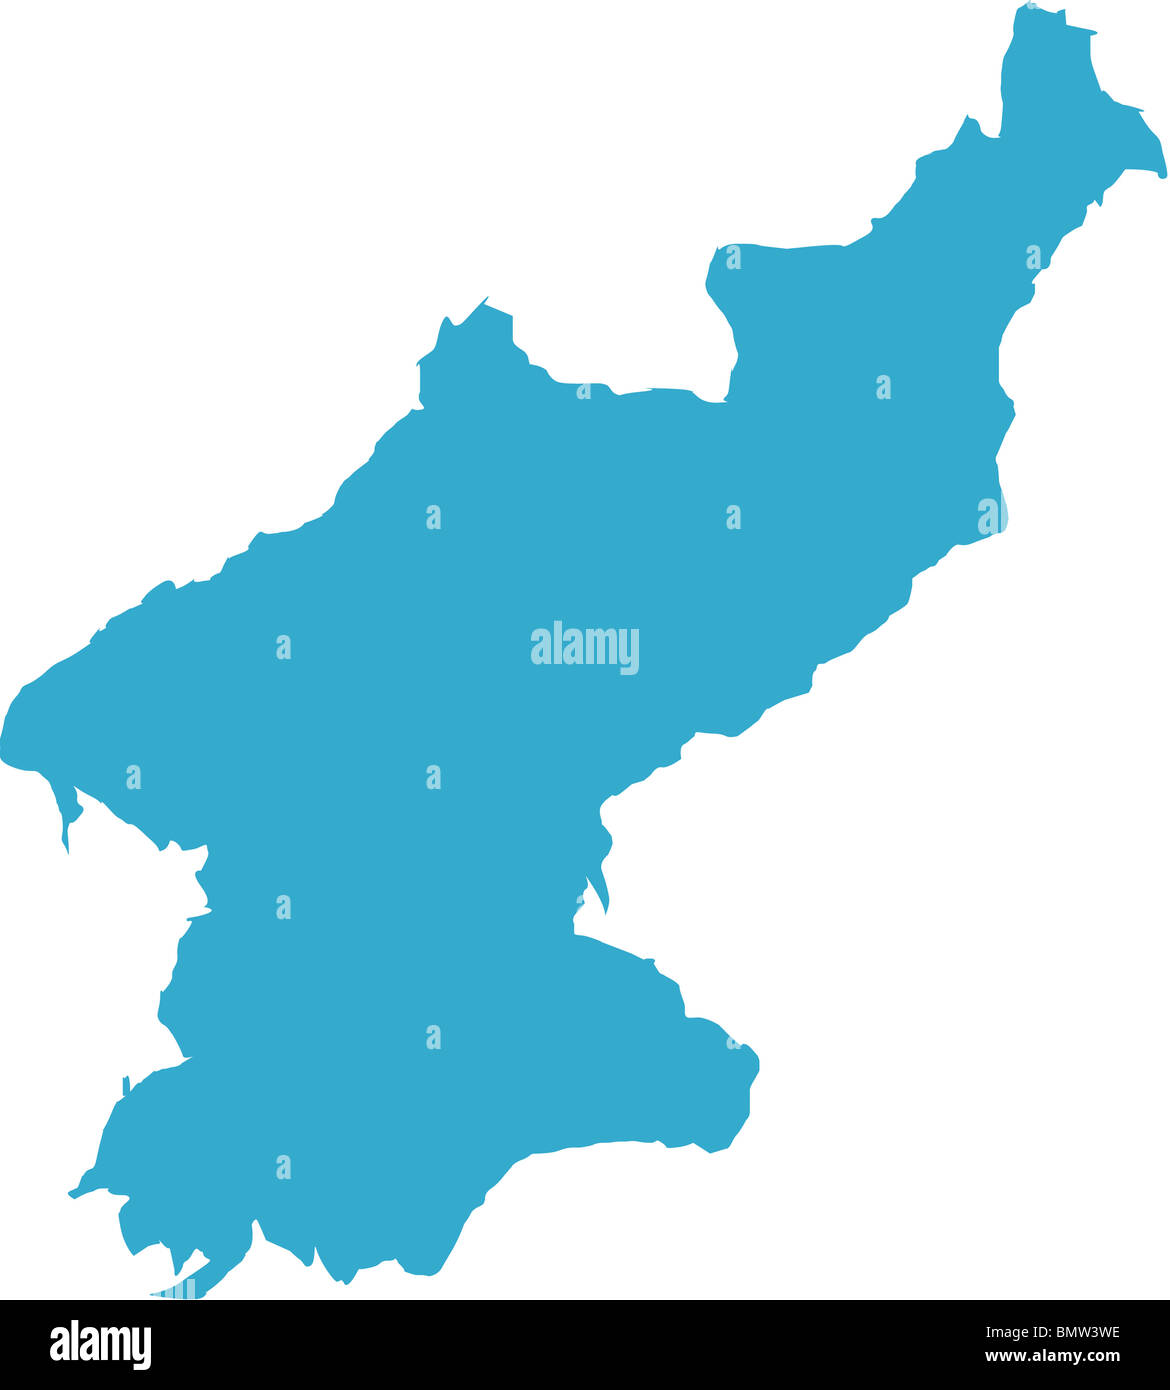 There is a map of north korea country stock photo 30055354 alamy there is a map of north korea country gumiabroncs Images